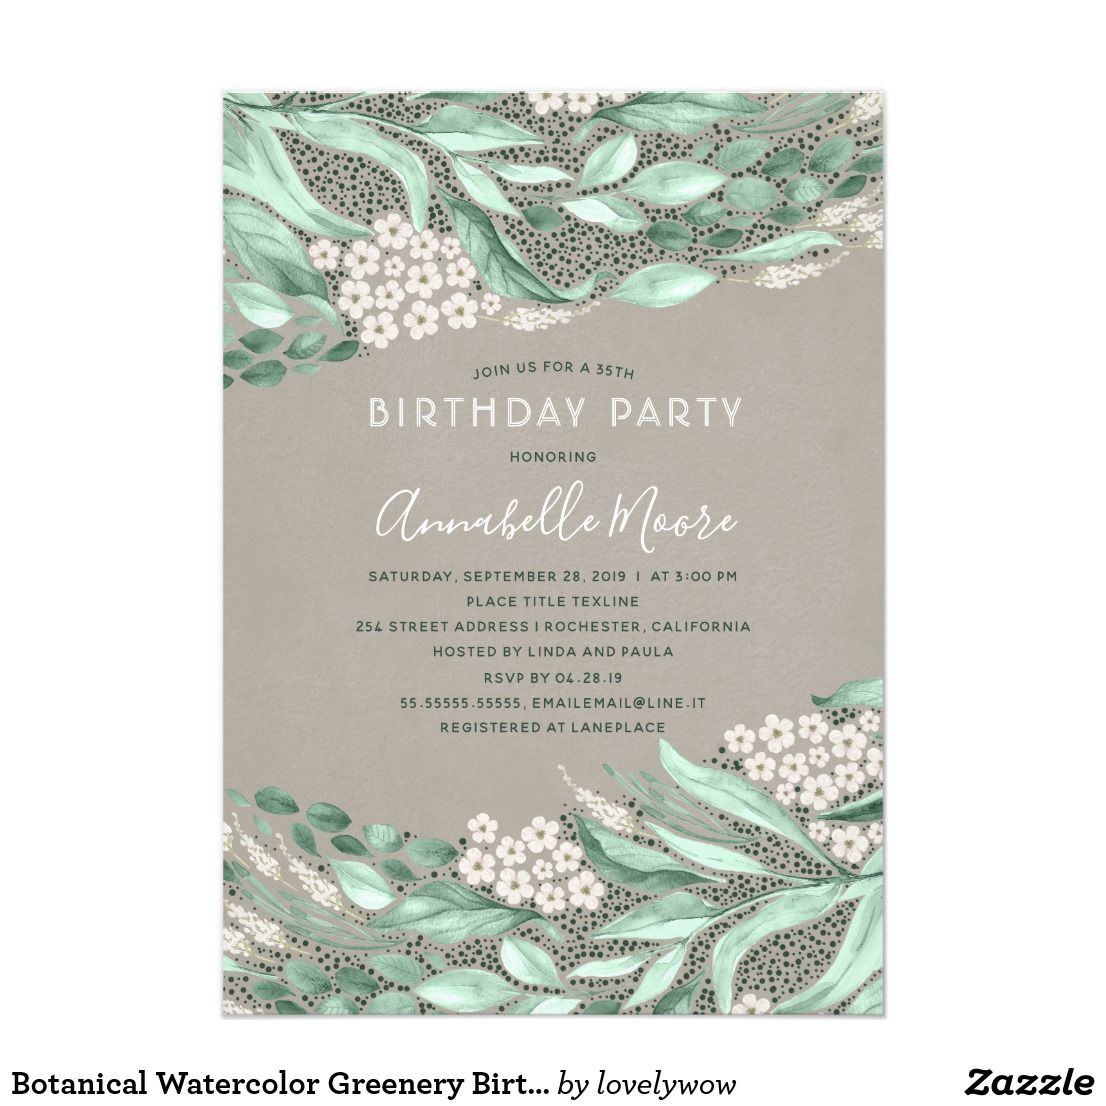 Botanical Watercolor Greenery Birthday Party Invitation In 2019